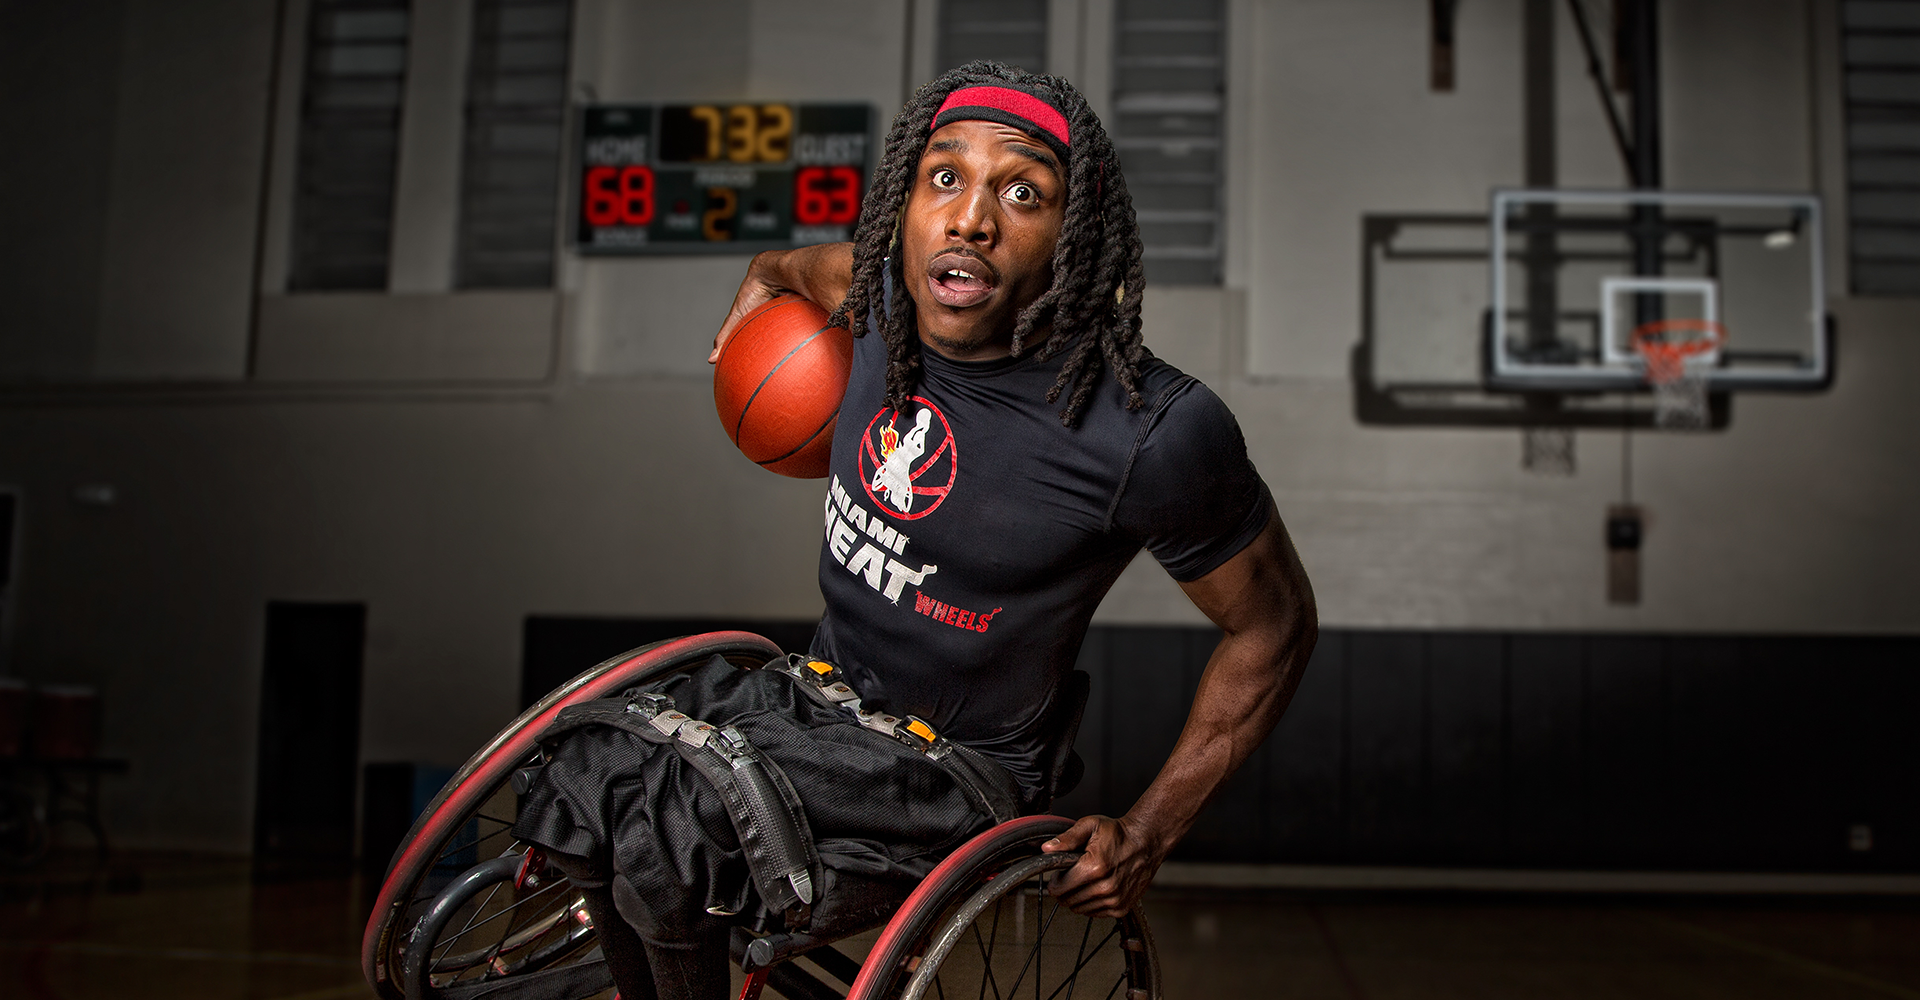 Jeremie Phenom Thomas Wheelchair Rapper